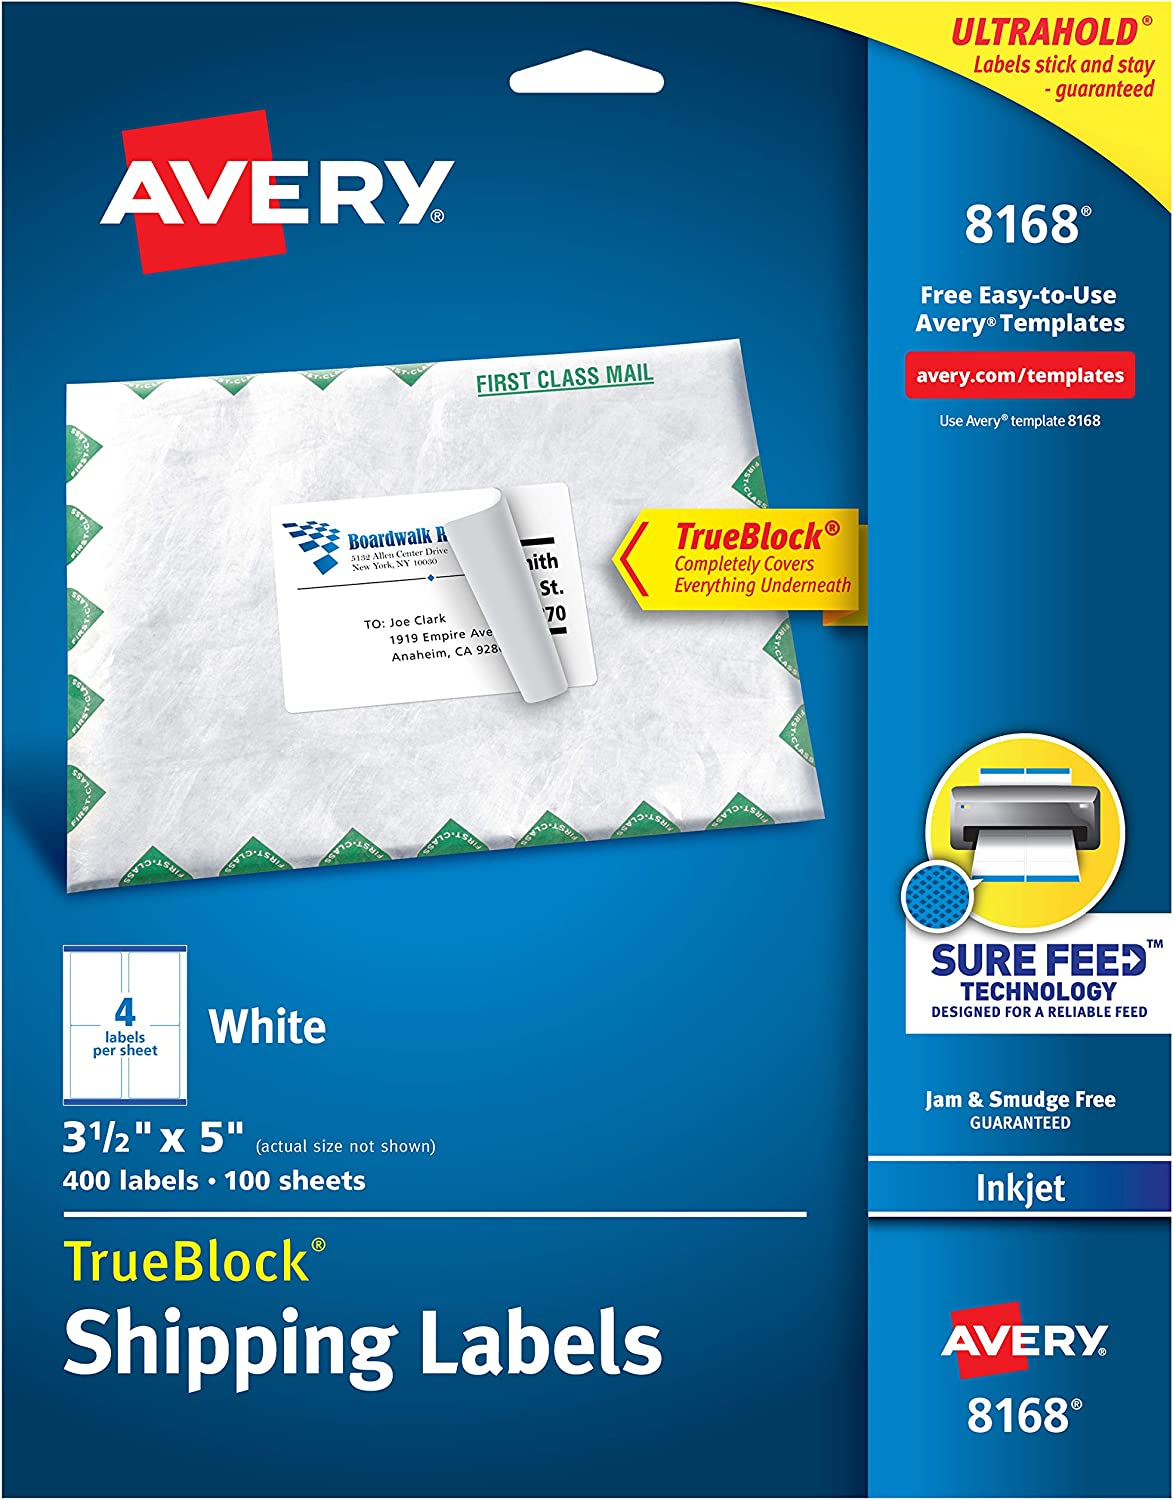 Avery Shipping Address Labels, Inkjet Printers, 100 Labels, 3-1/2 x 5, Permanent Adhesive, TrueBlock (8168), White